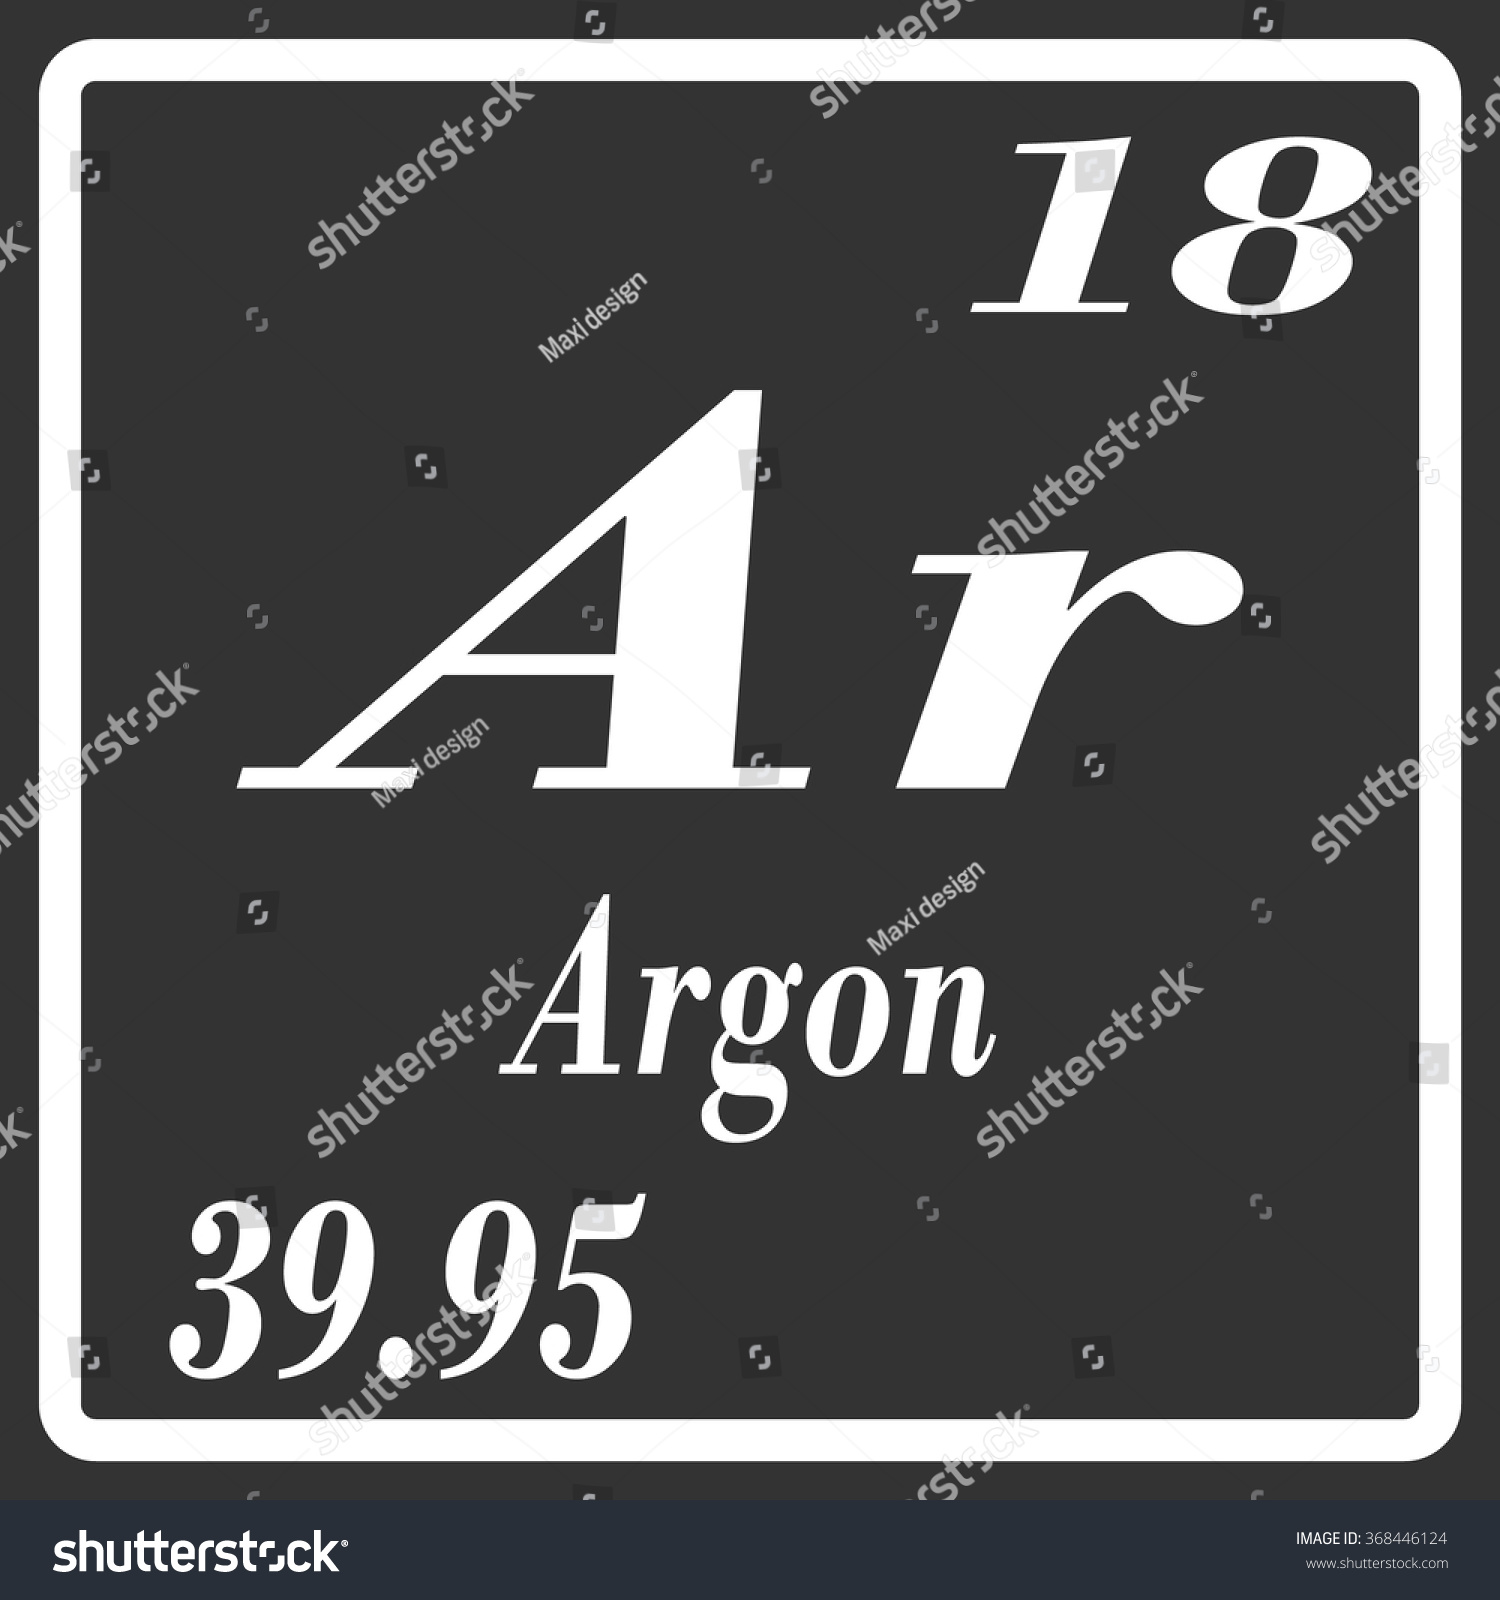 Periodic table elements argon stock vector 368446124 shutterstock periodic table of elements argon gamestrikefo Choice Image